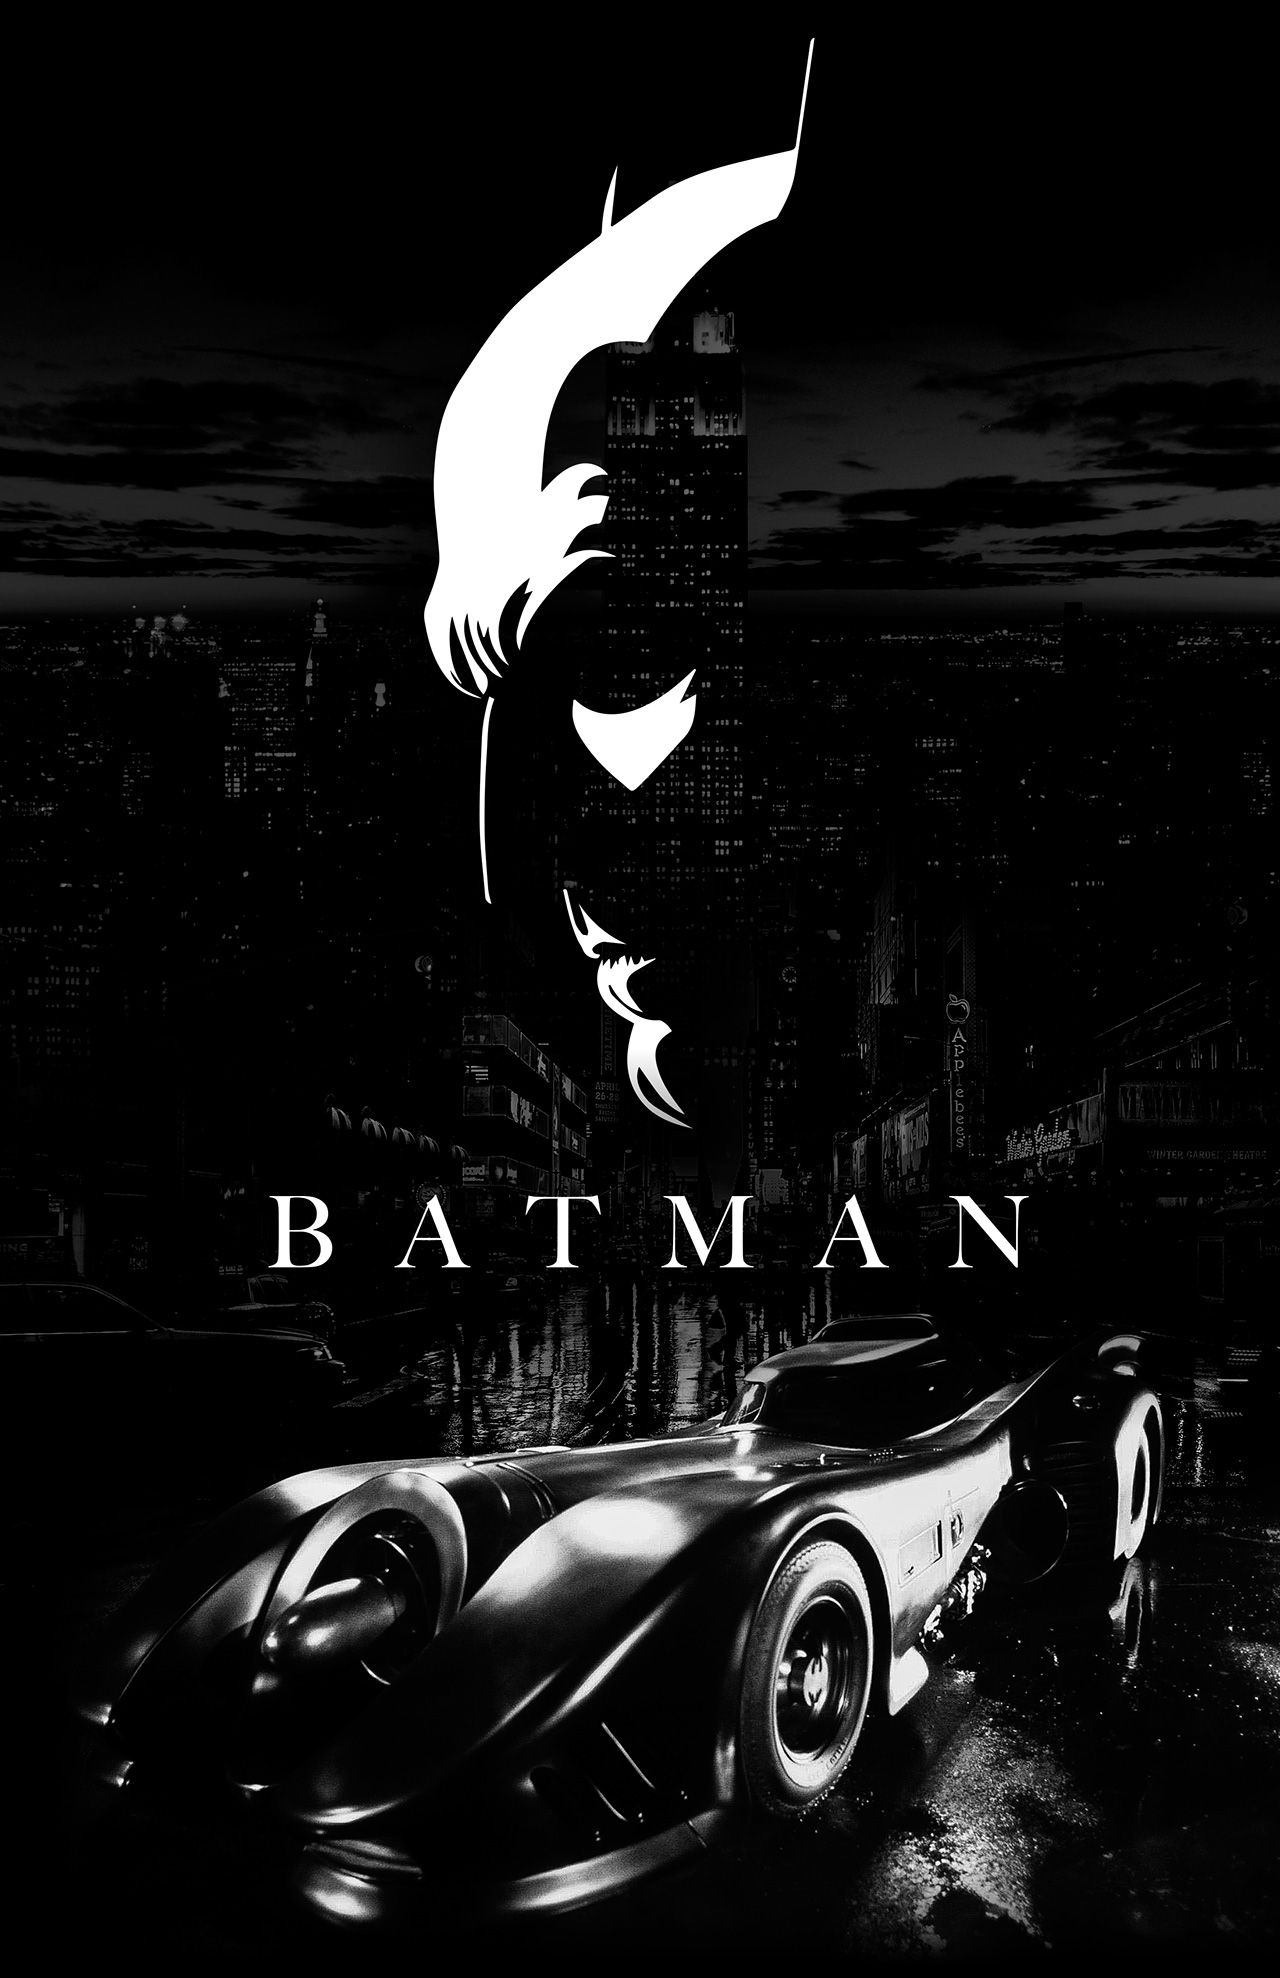 Batman_MoviePoster_HiRes